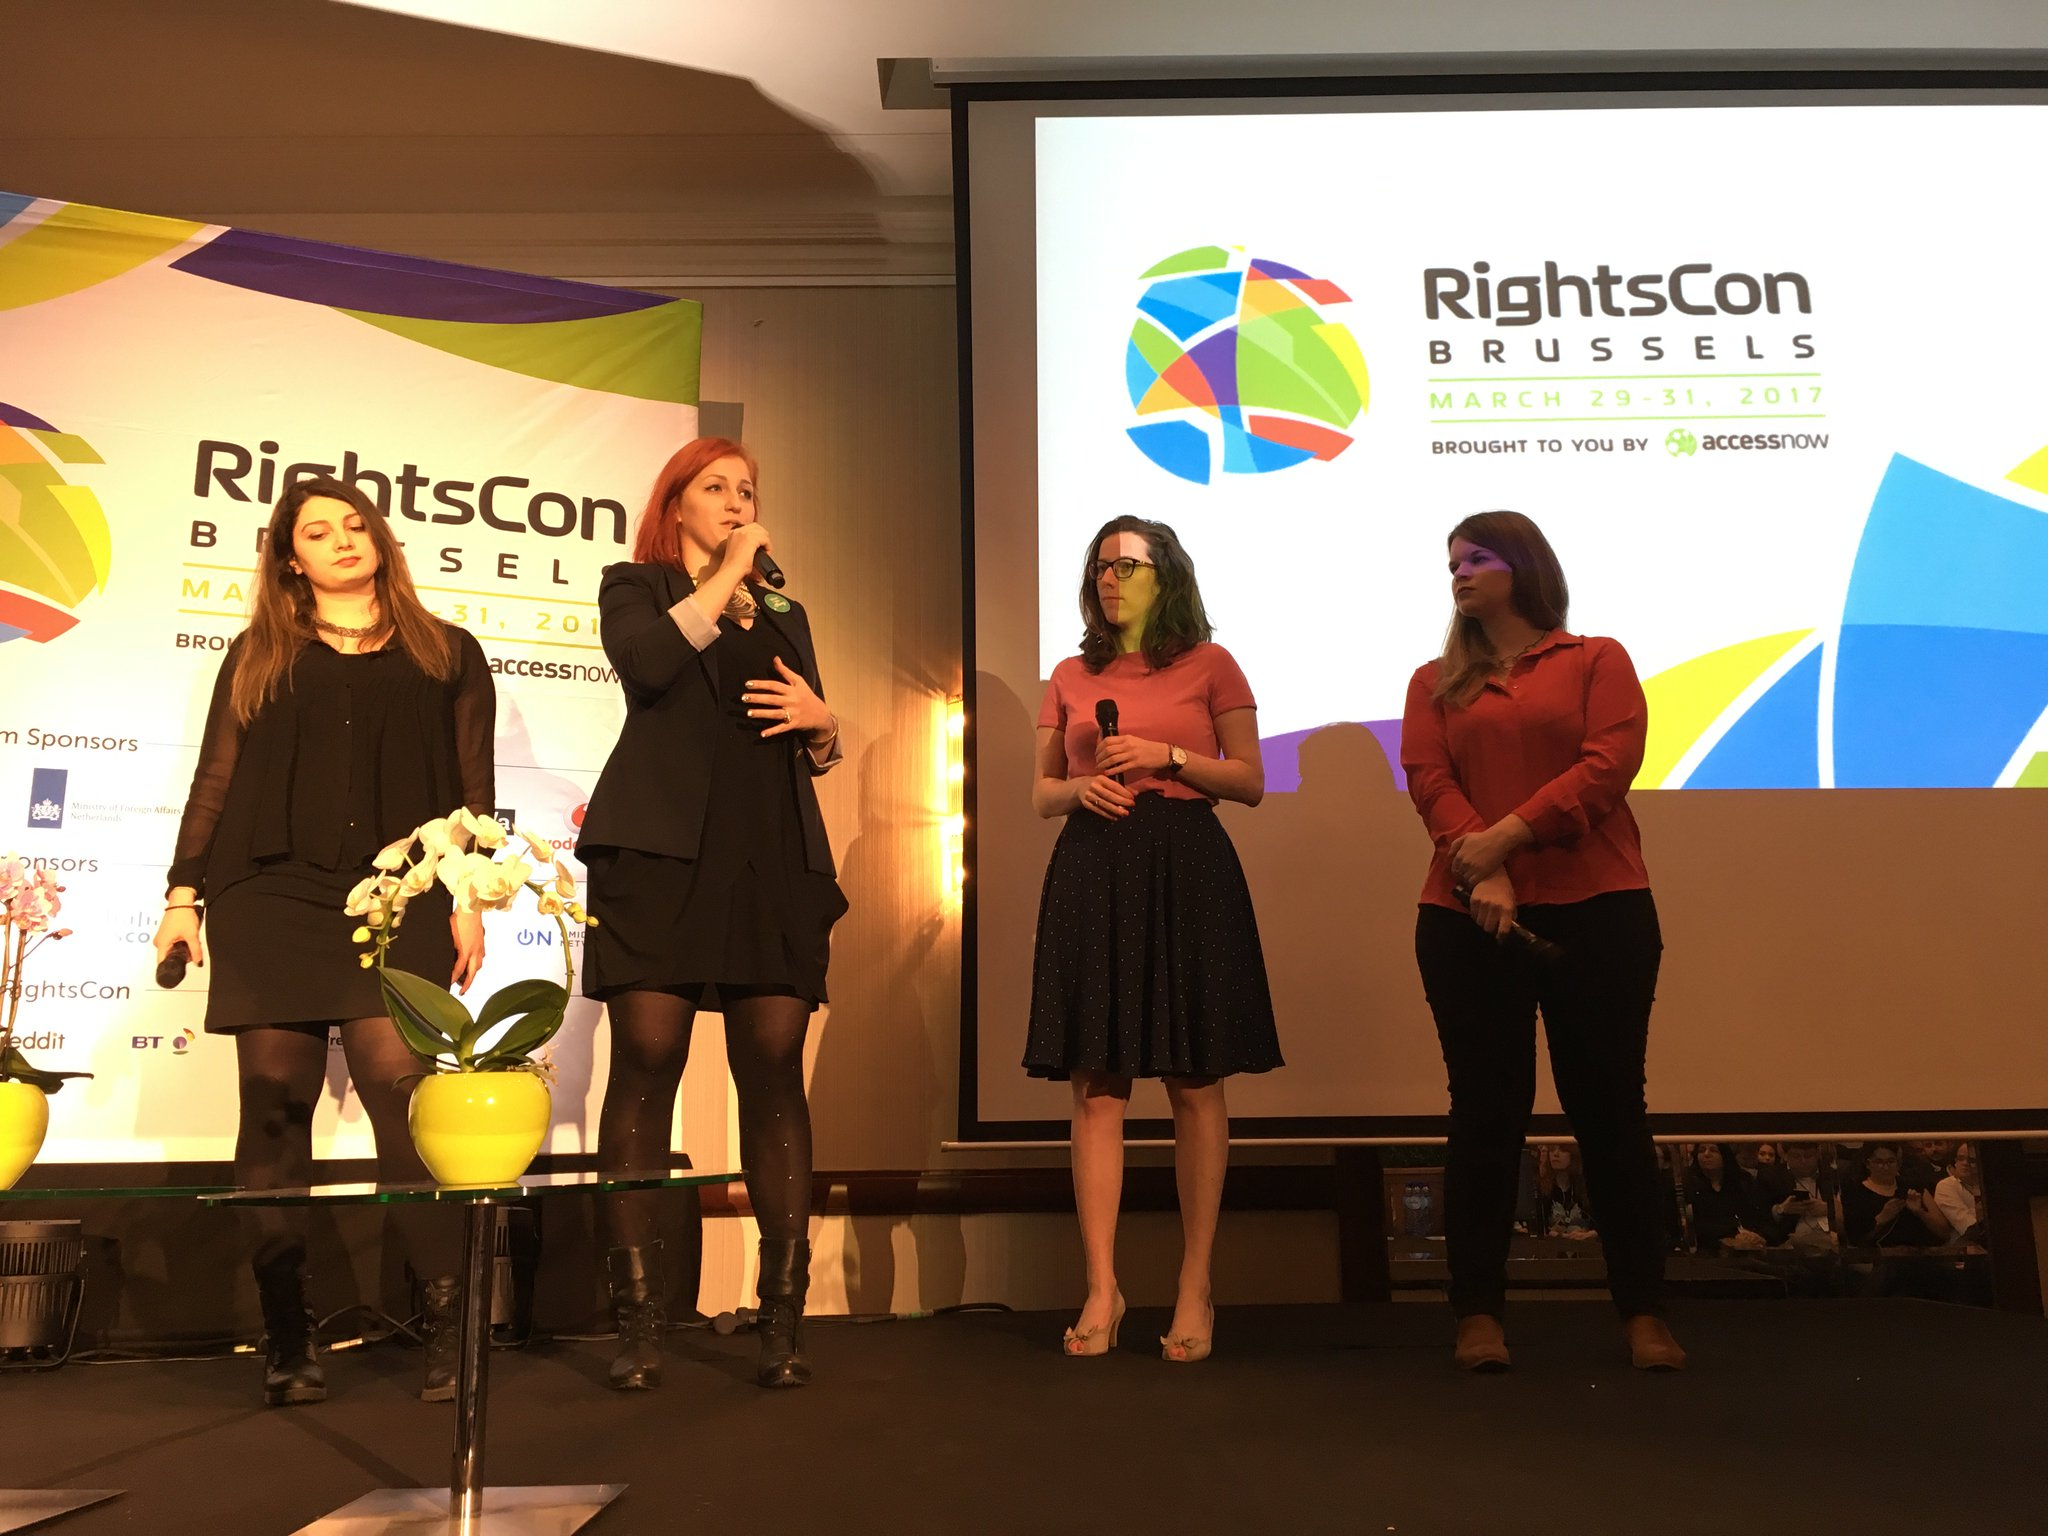 Thumbnail for RightsCon 2017: